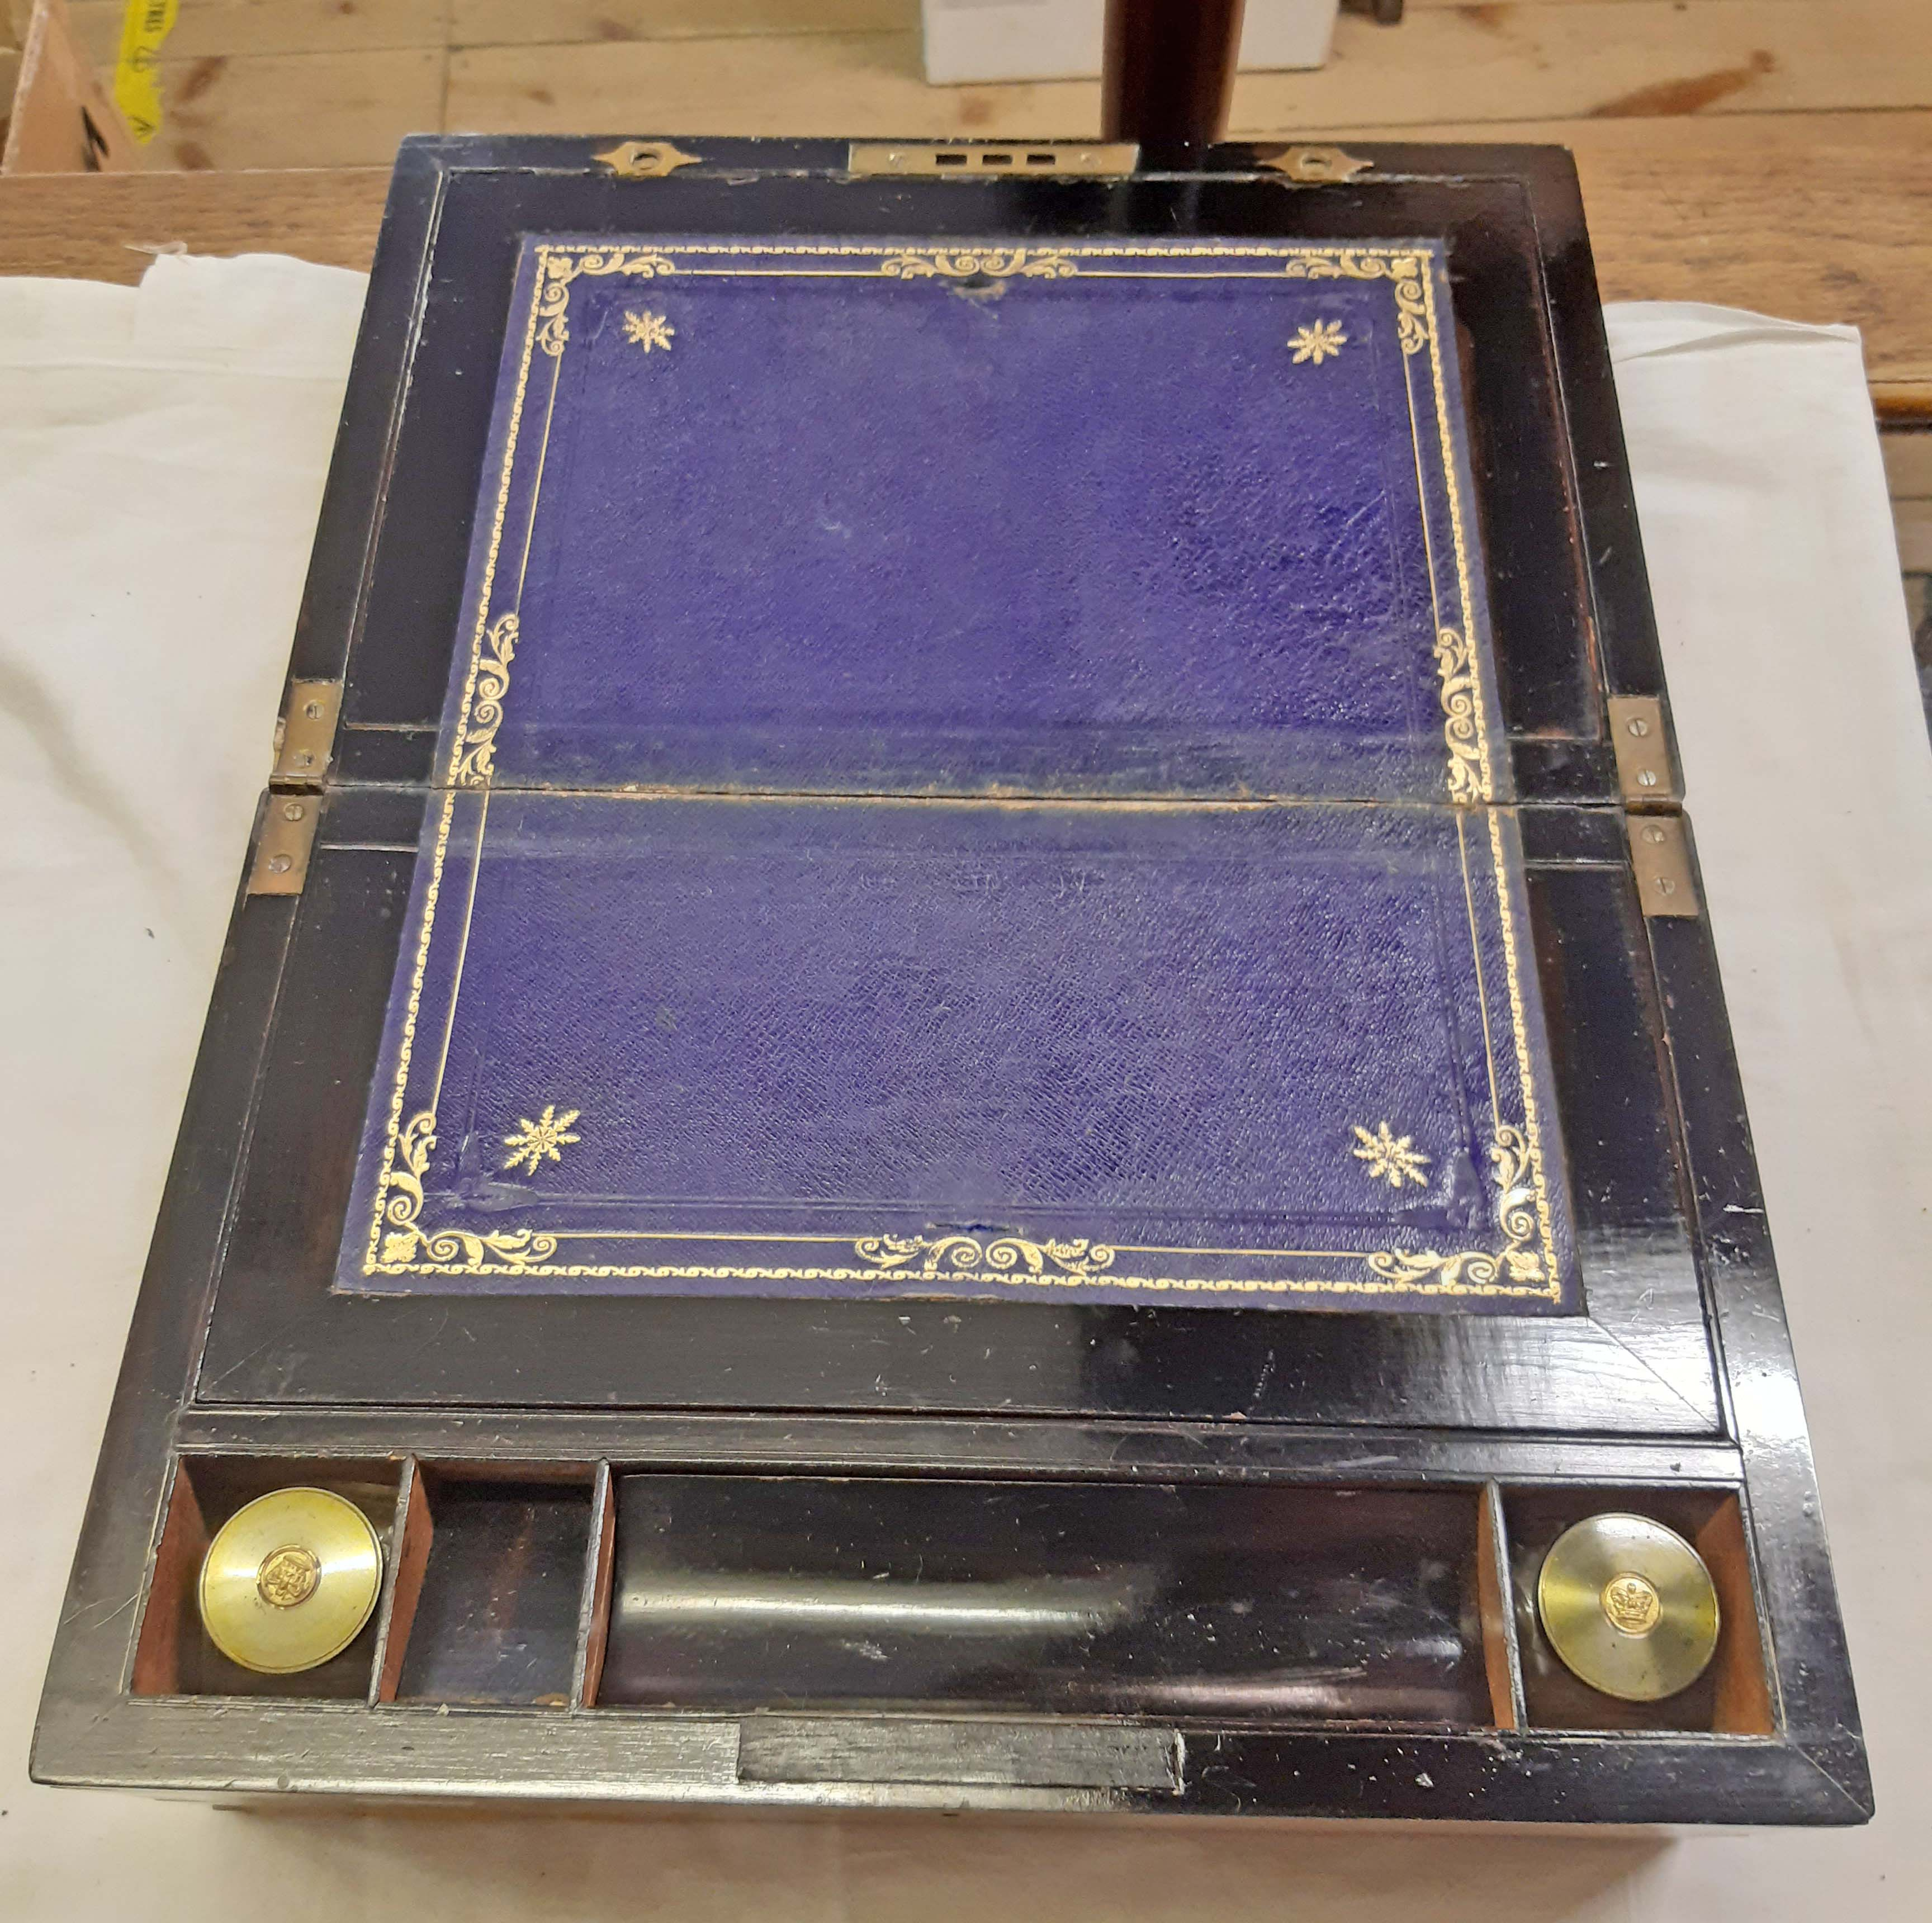 A Victorian burr walnut veneered writing slope with fitted interior and inkwells - Image 2 of 2